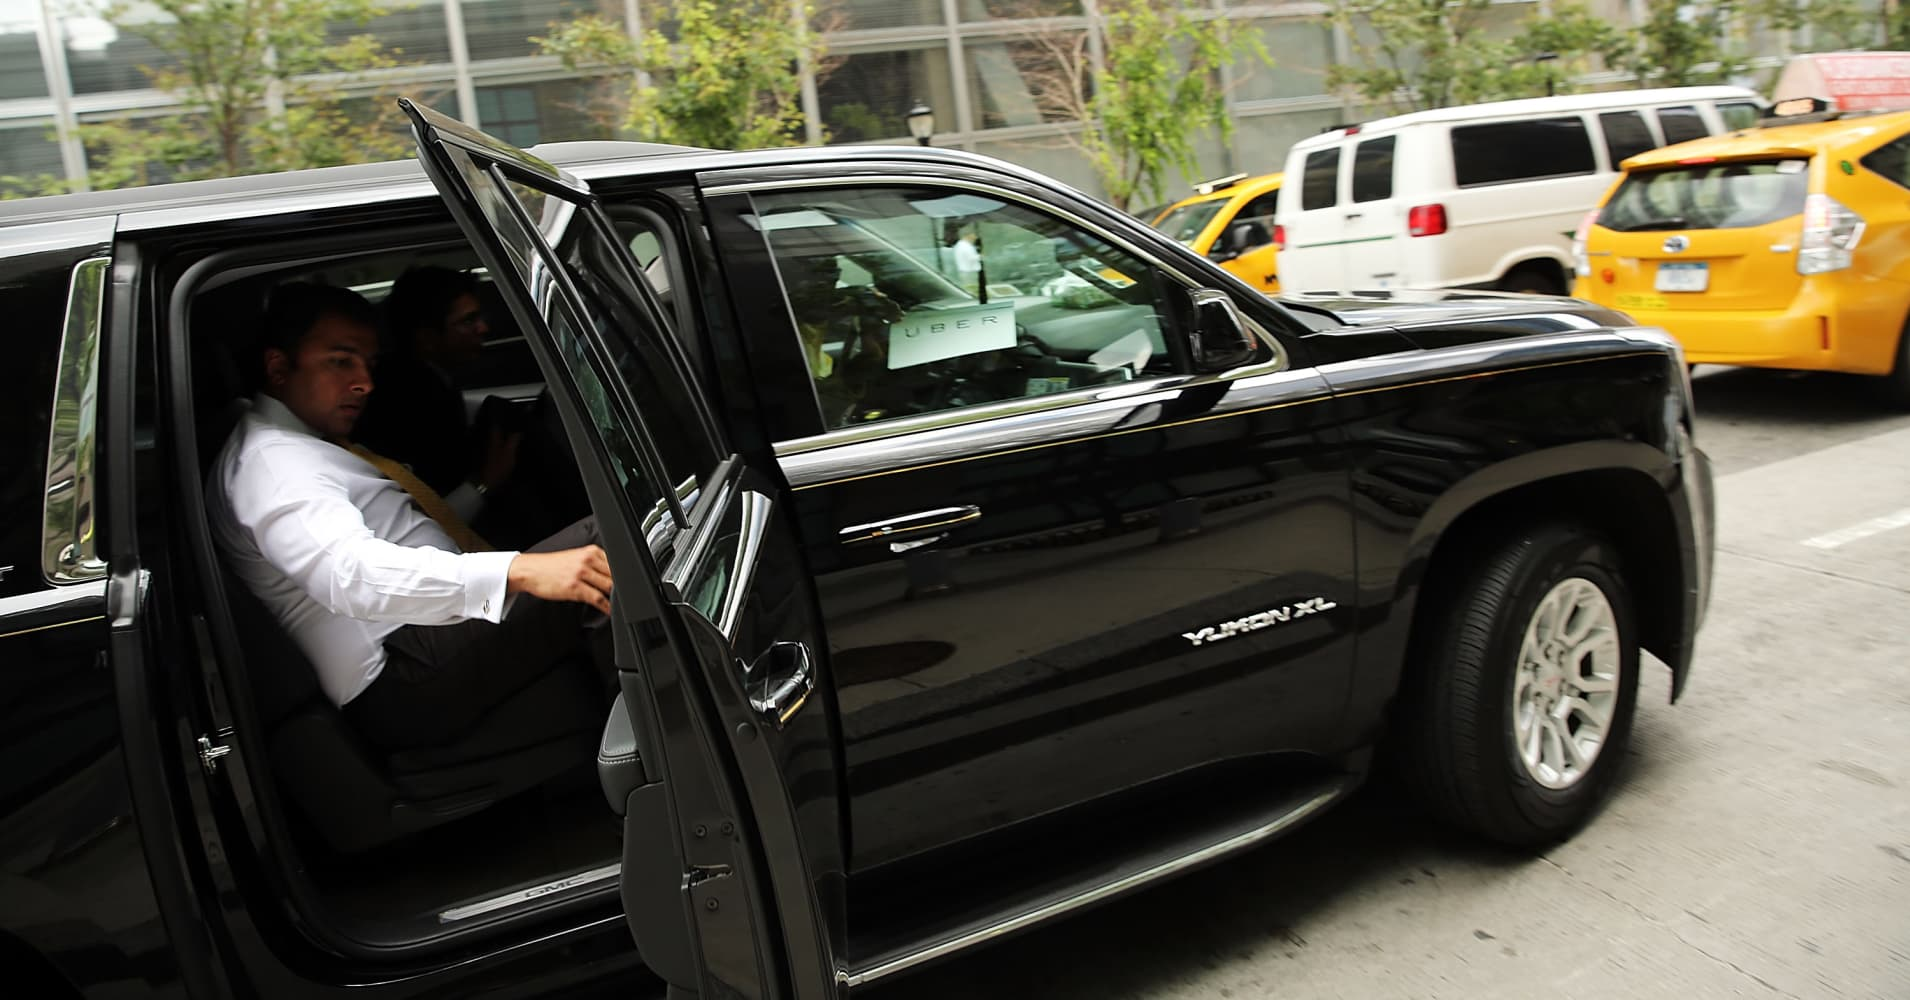 An Uber vehicle is viewed in Manhattan in New York City.